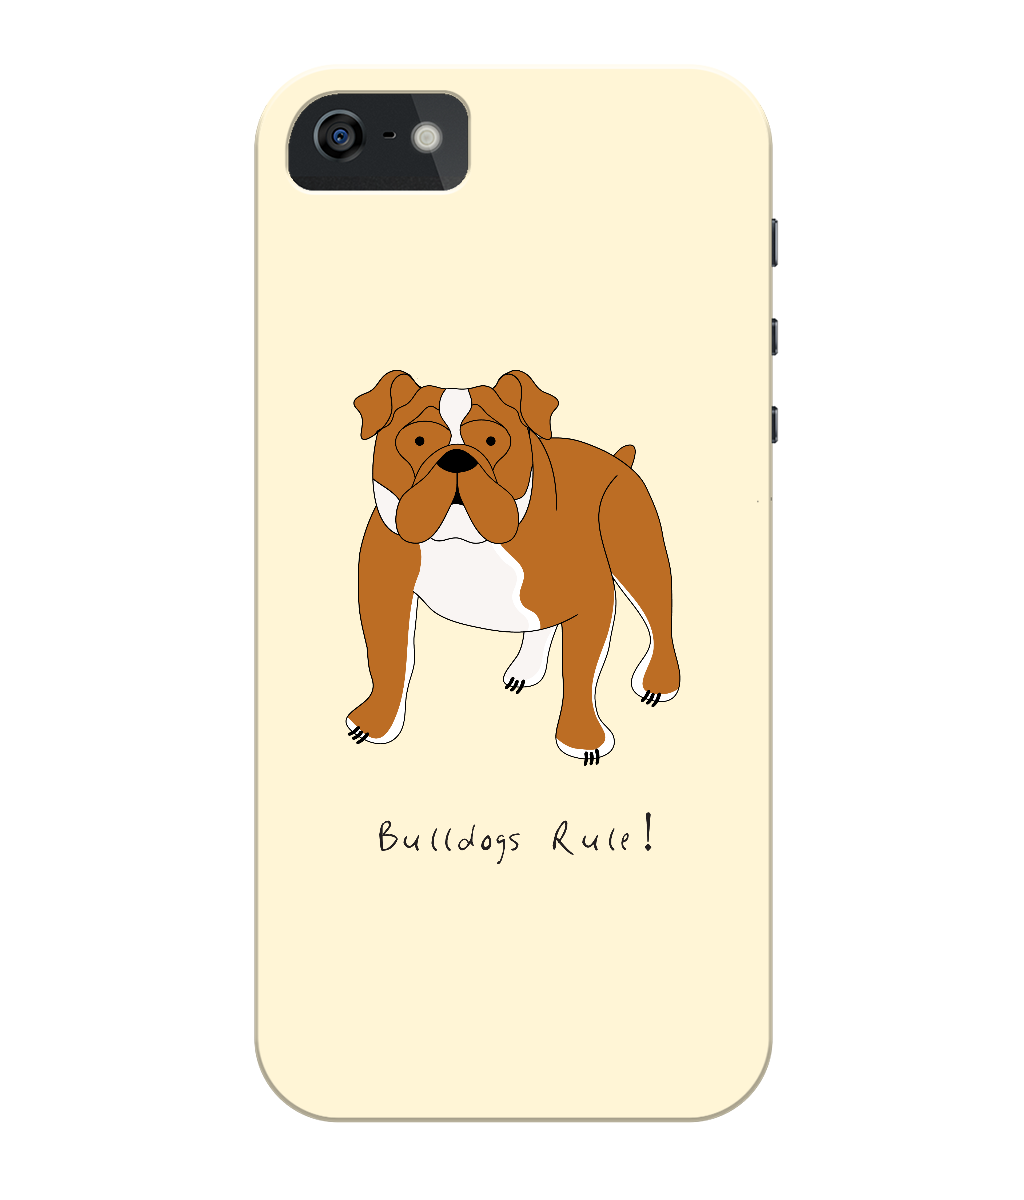 iPhone 5c Full Wrap Case - Bulldogs Rule! - Dogs Rule!